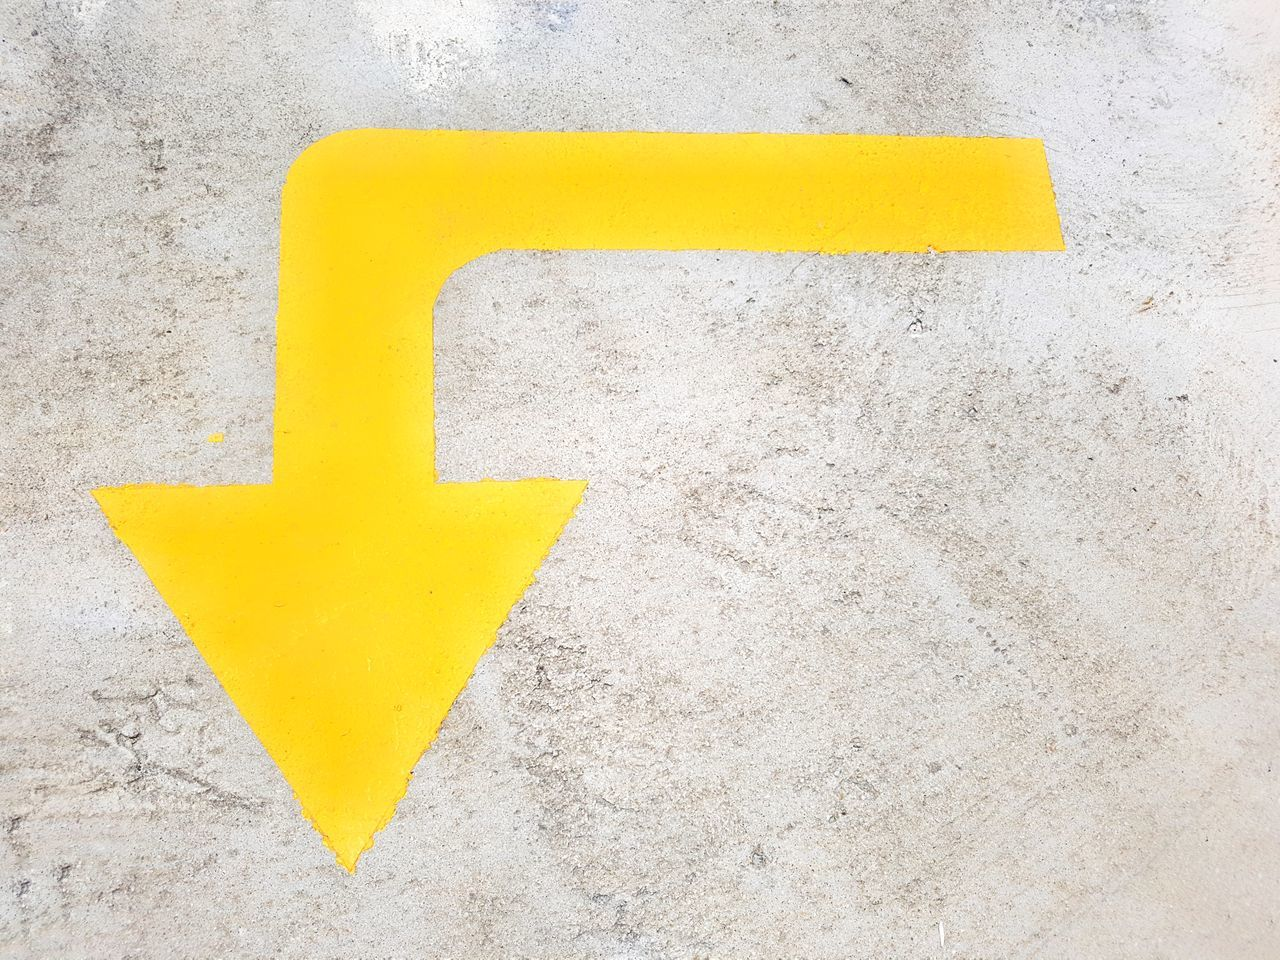 Arrow Arrow Symbol Road Signal Asphalt Concrete Background Texture Yellow Yellow Arrow Pavement Direction Showing Direction Road Signage